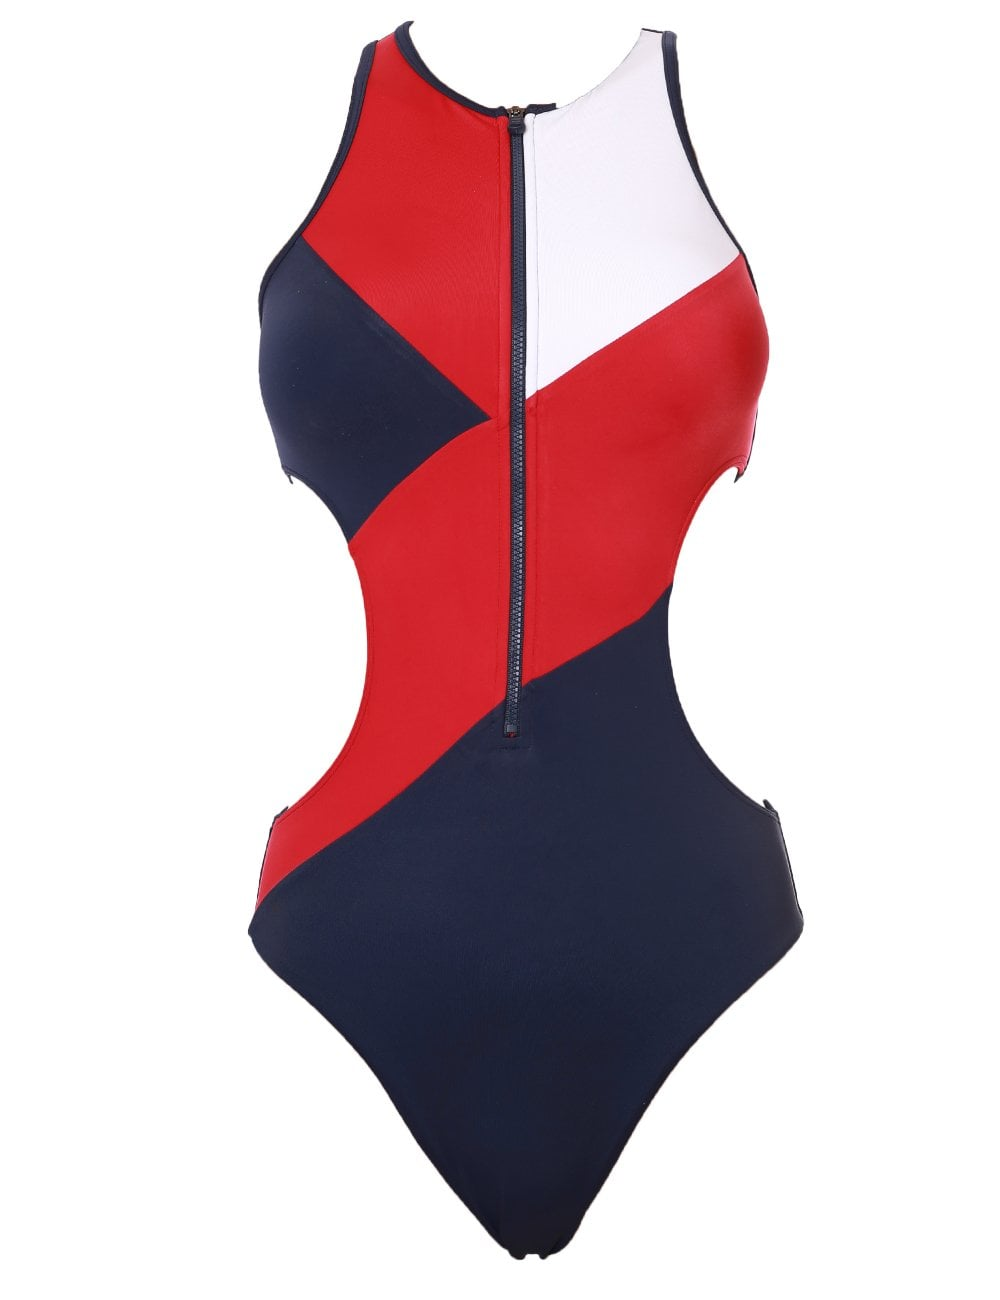 10dcb3c2059 Women's Cheeky One-Piece Swimsuit